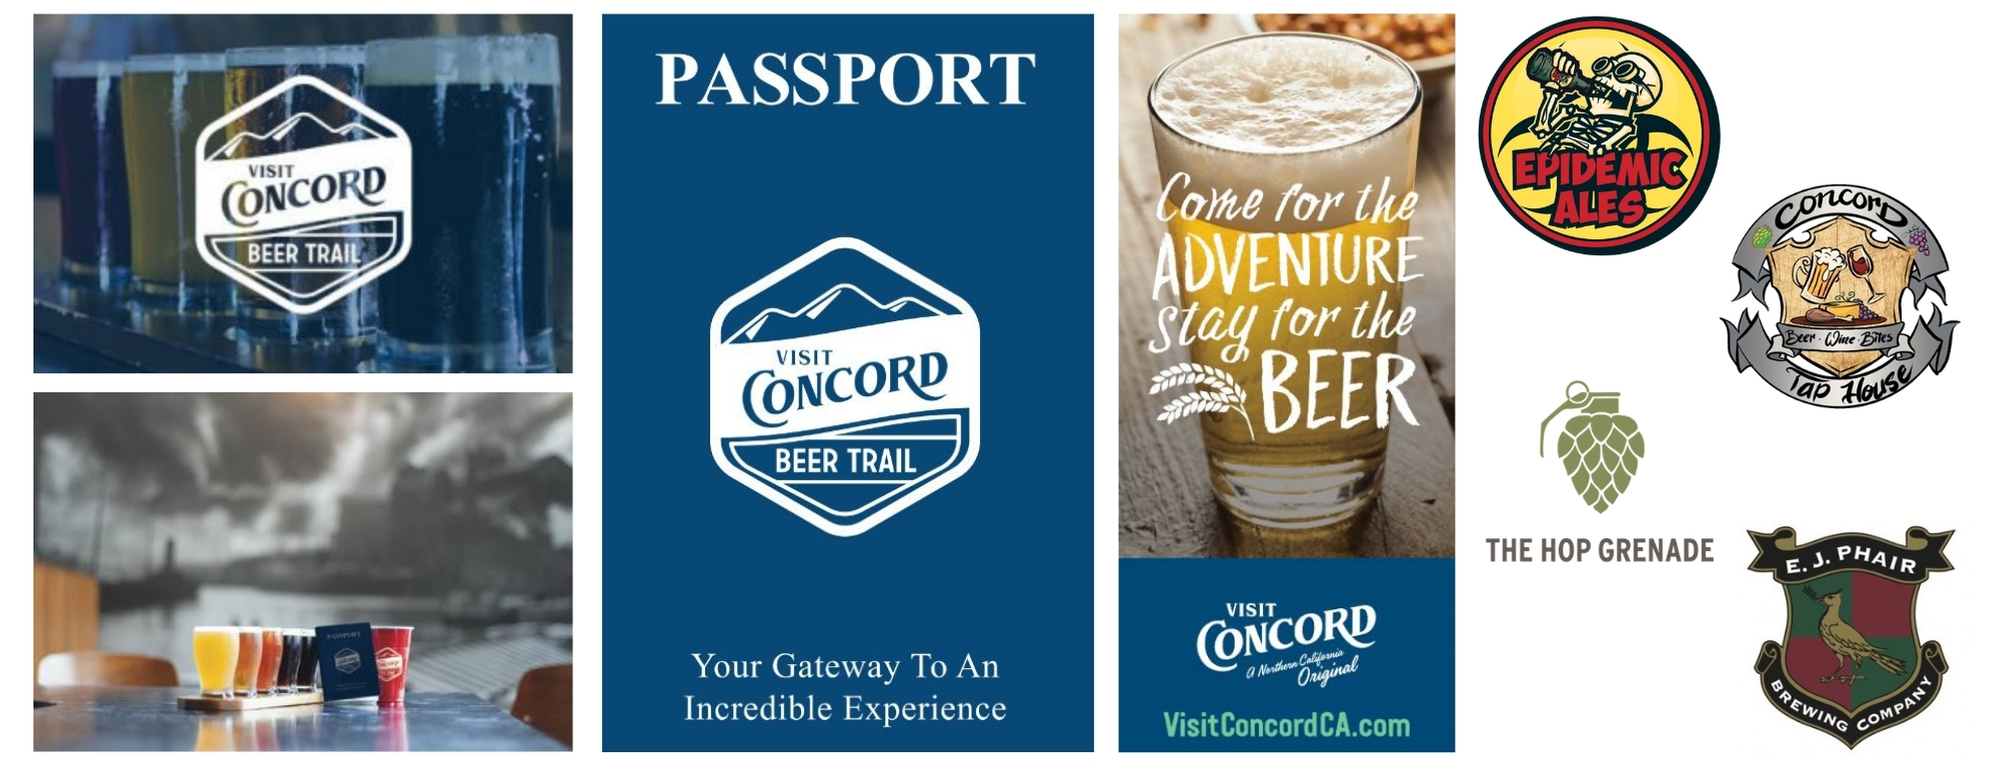 Concord Beer Trail